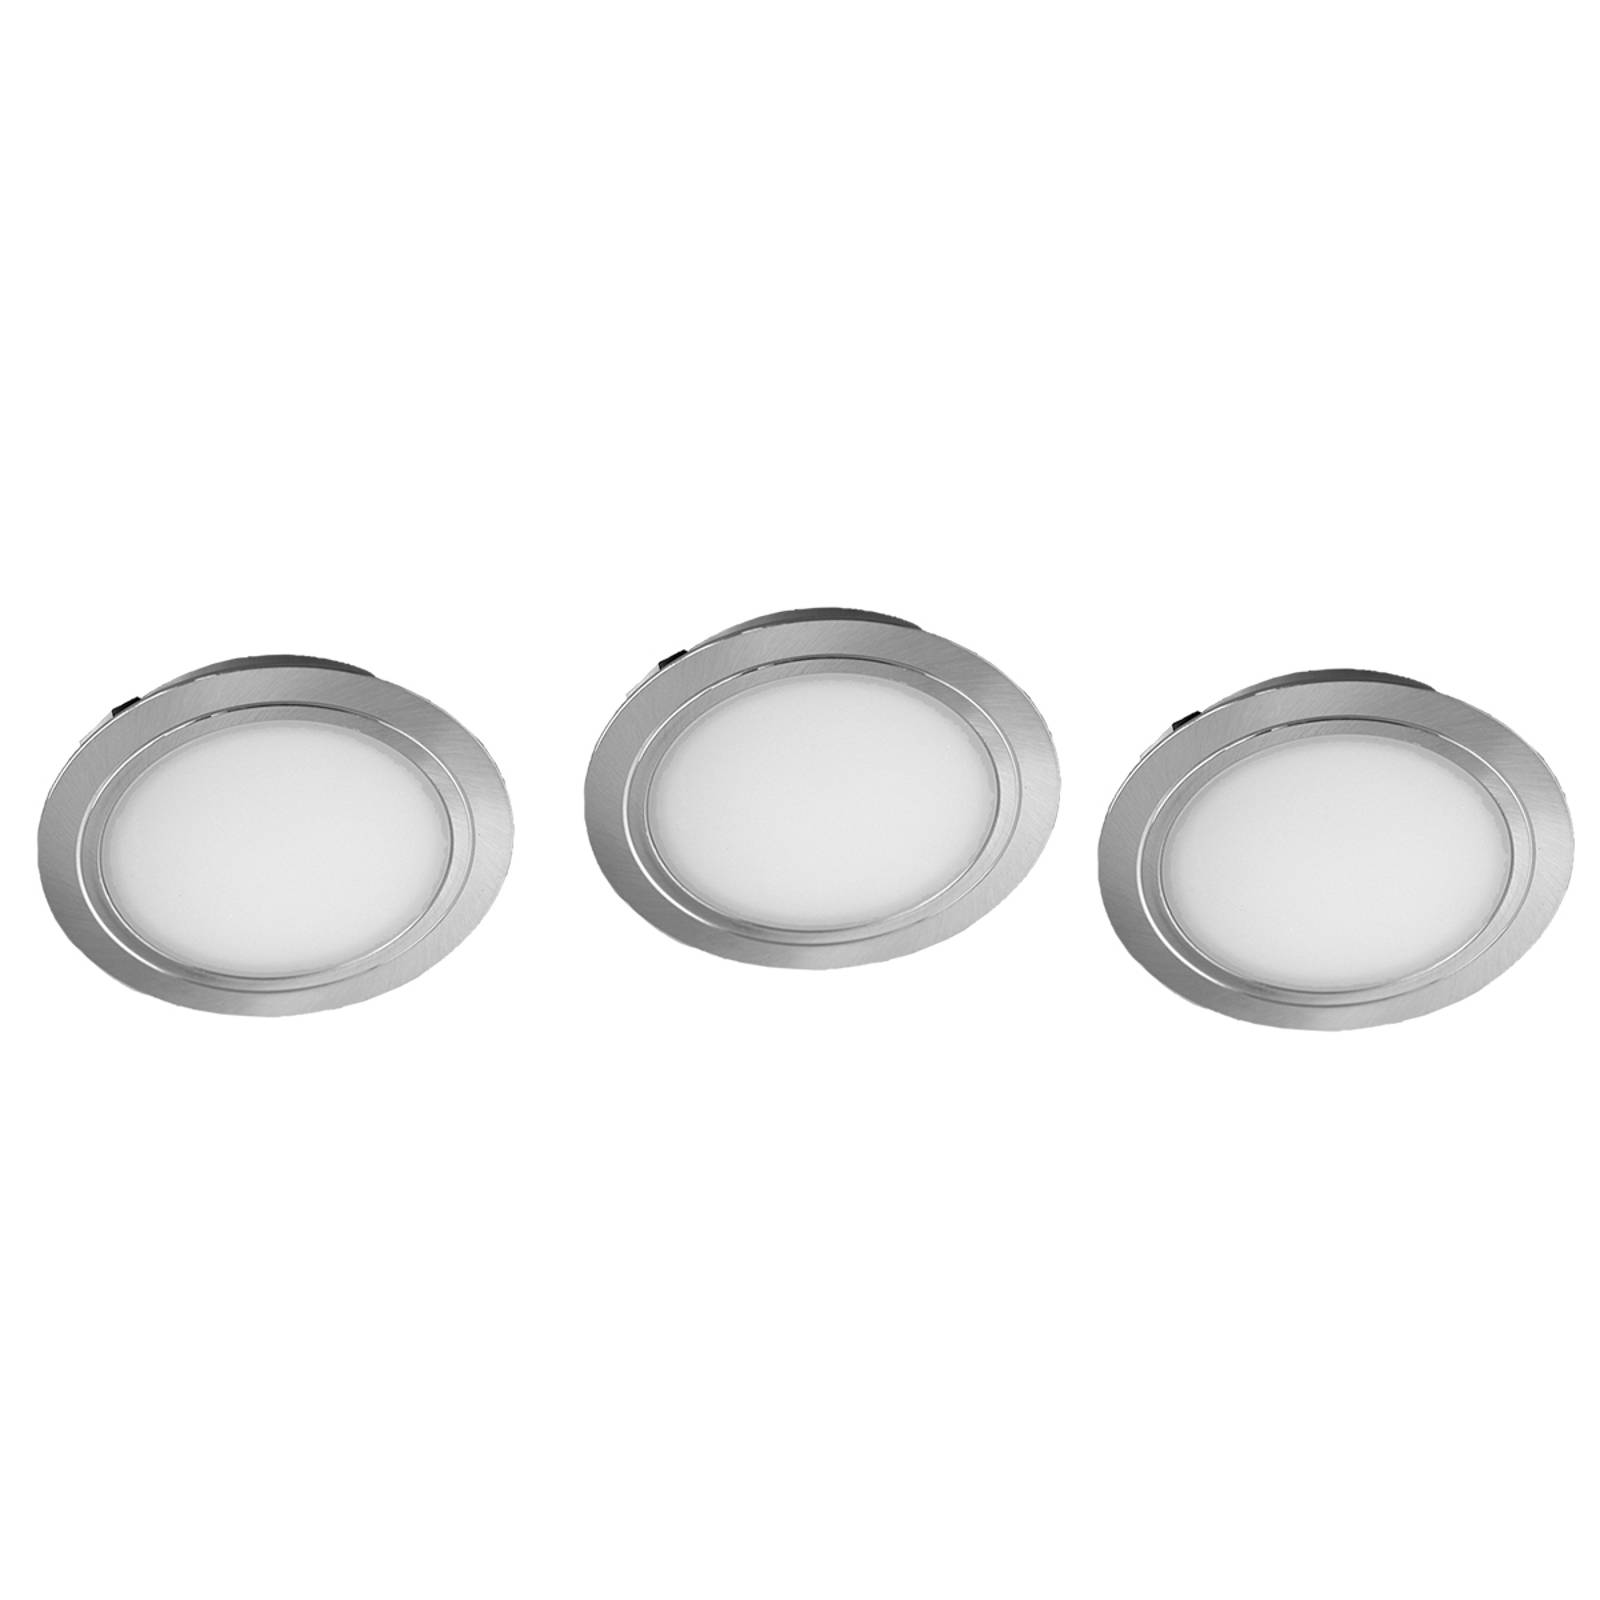 Cubic 68 CF LED recessed light, set of three from Evotec